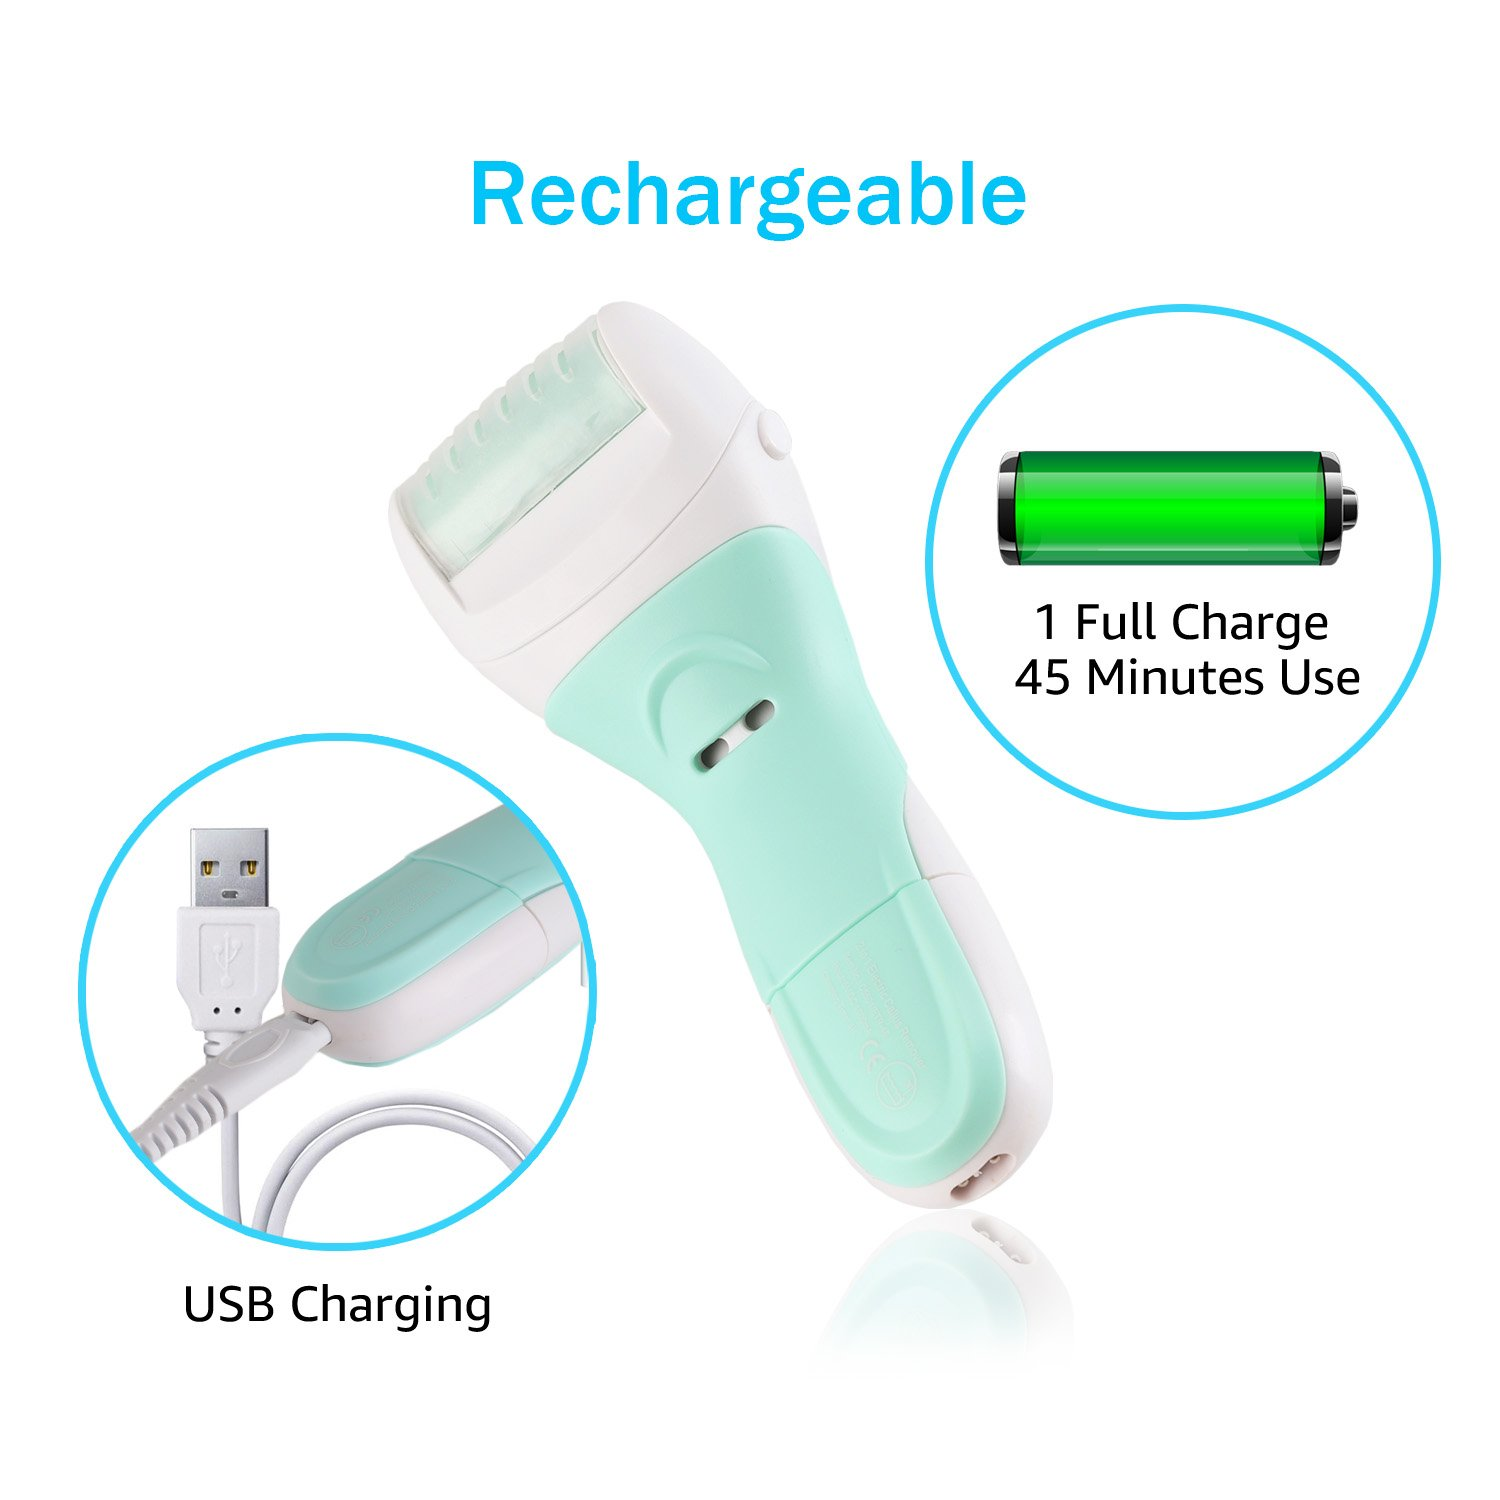 Electronic Foot File Pedicure Tools, Wet & Dry Electric Callus Remover Rechargeable Cordless Waterproof with 2 Heads to Remove Dead/Hard/Dry/Rough/Cracked Skin & Polish Nails Effectively - Sissely by Sissely (Image #5)